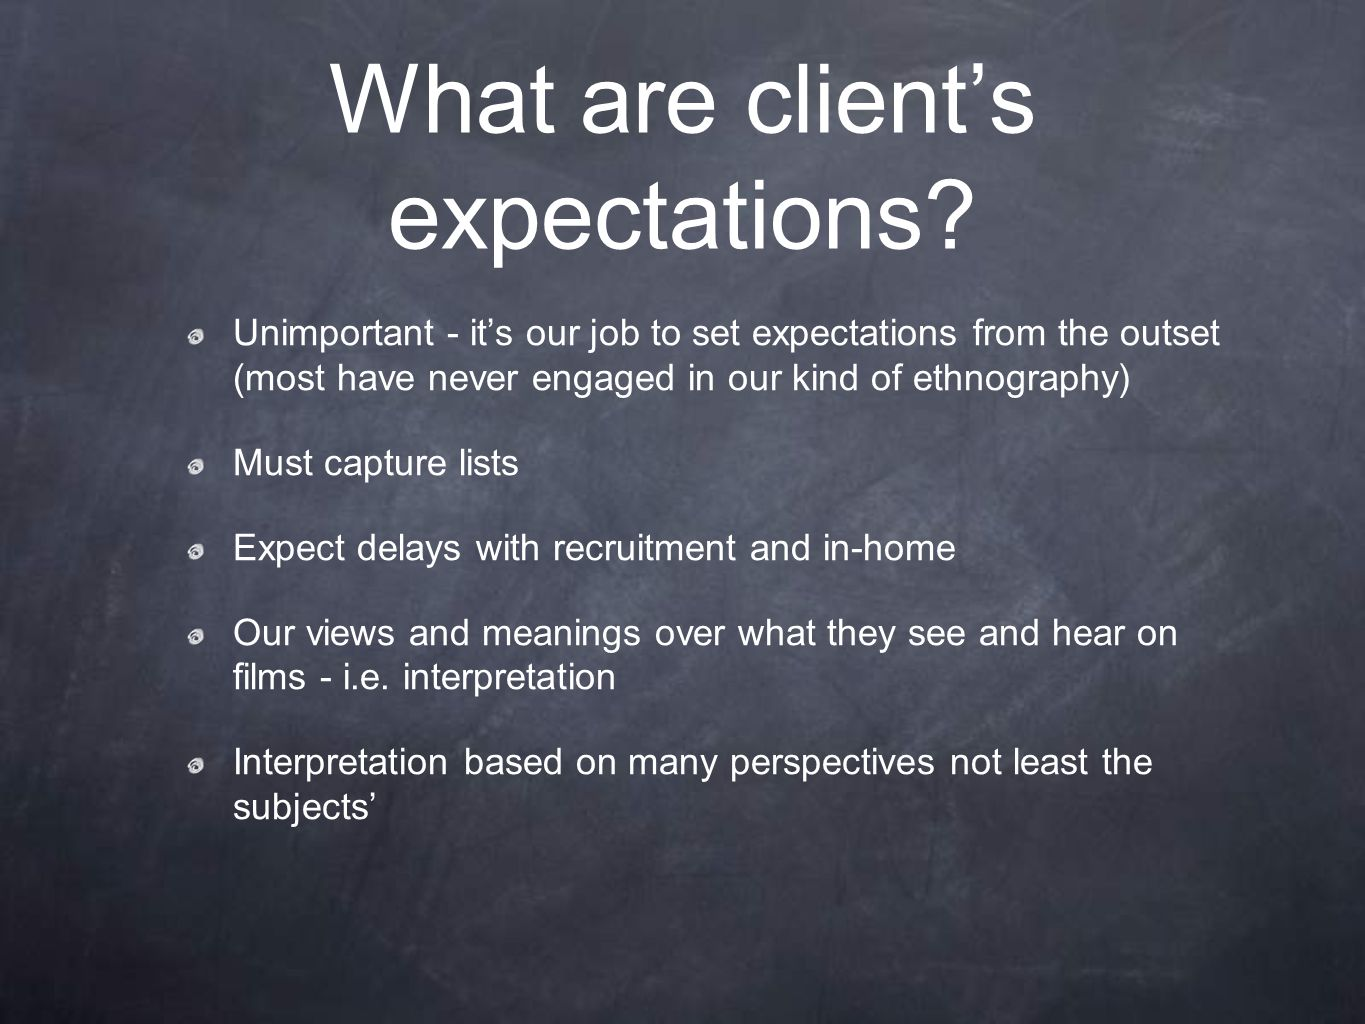 What are client's expectations? Unimportant - it's our job to set expectations from the outset (most have never engaged in our kind of ethnography) Mu